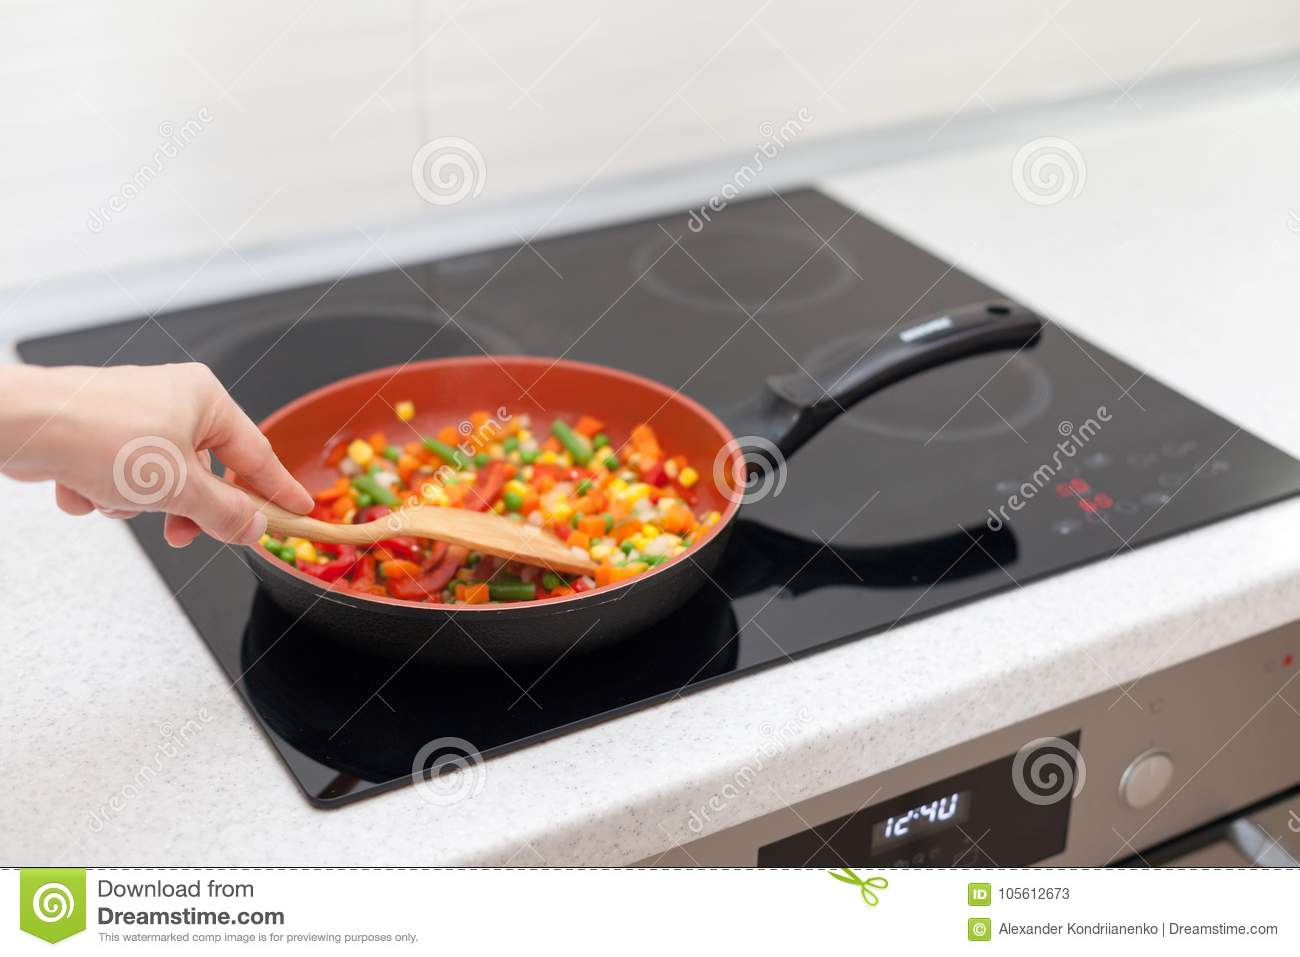 Vegetables are in a frying pan. Woman cooking colourful fresh vegetables on an electric stove.